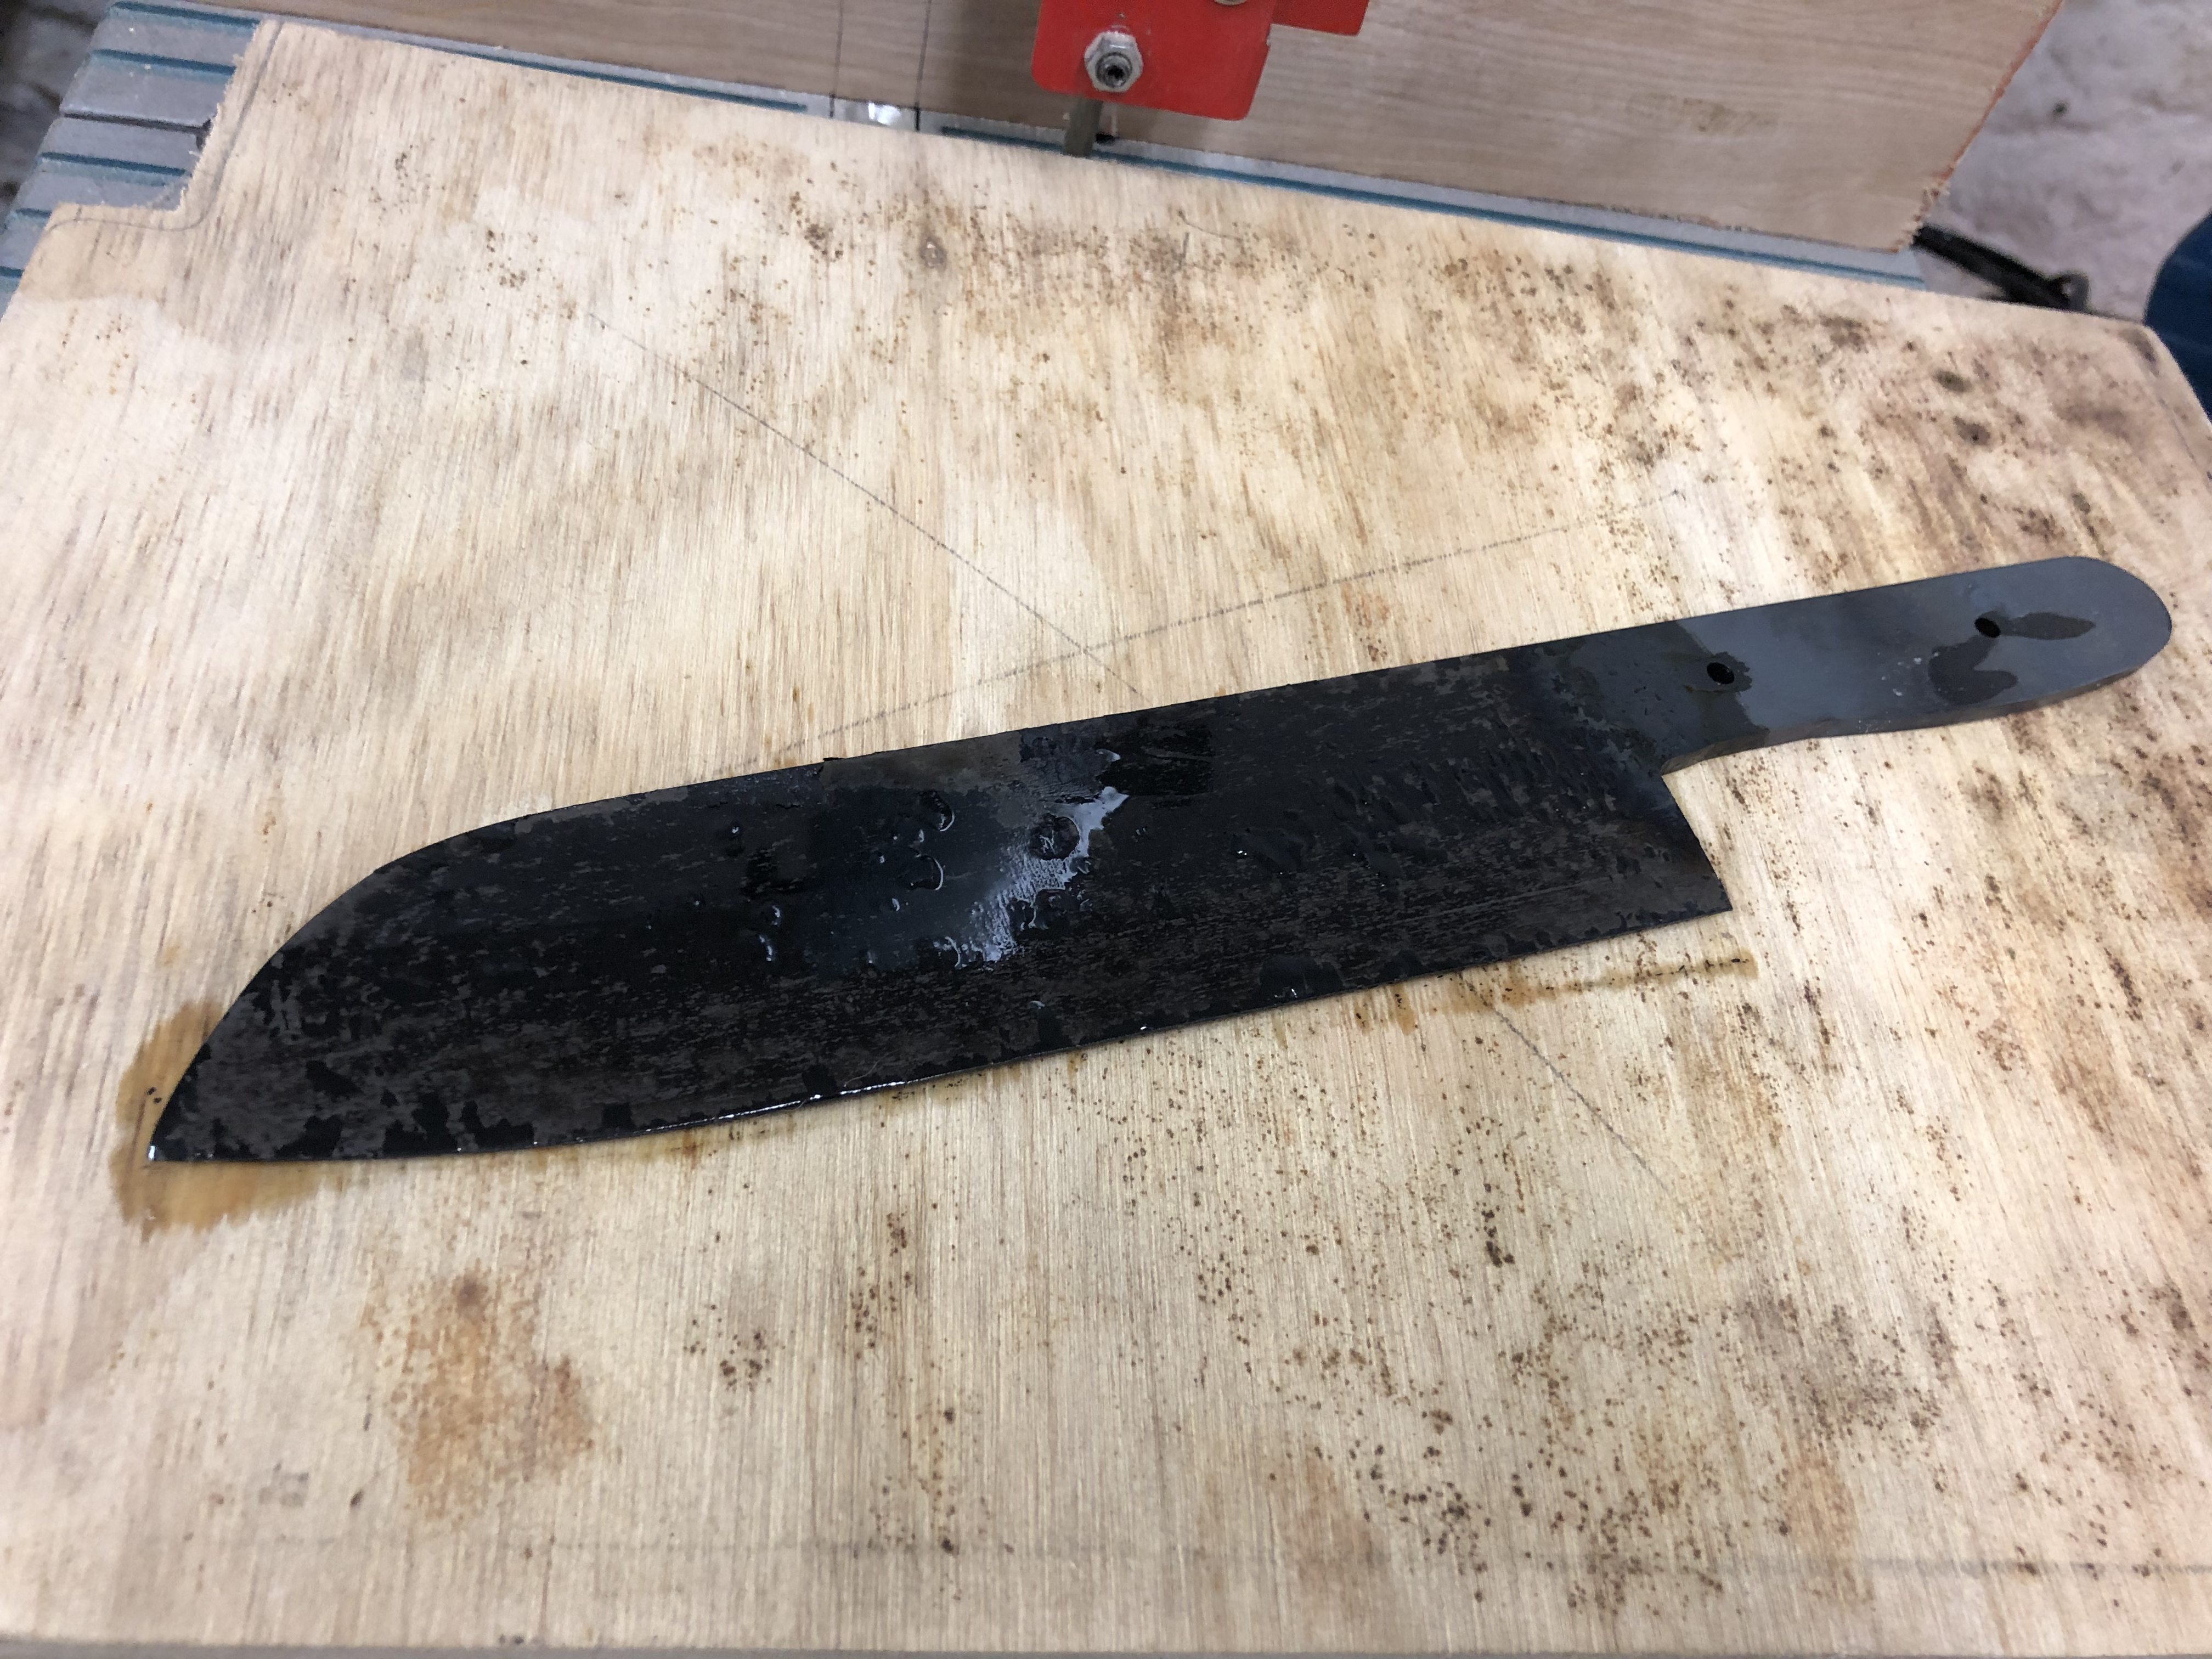 result of the heat treat